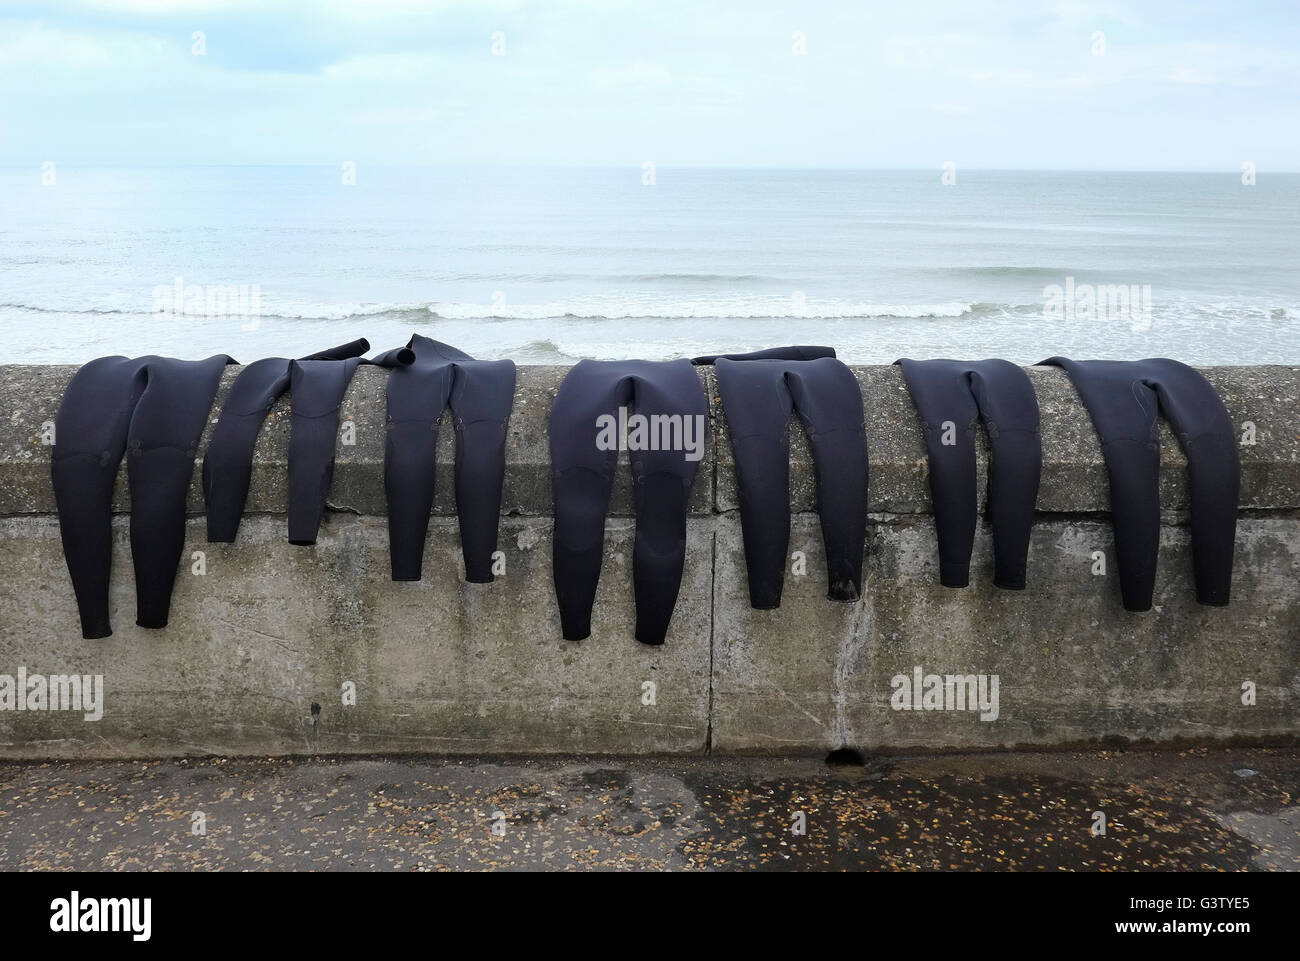 black wet suits drying out on concrete sea wall - Stock Image